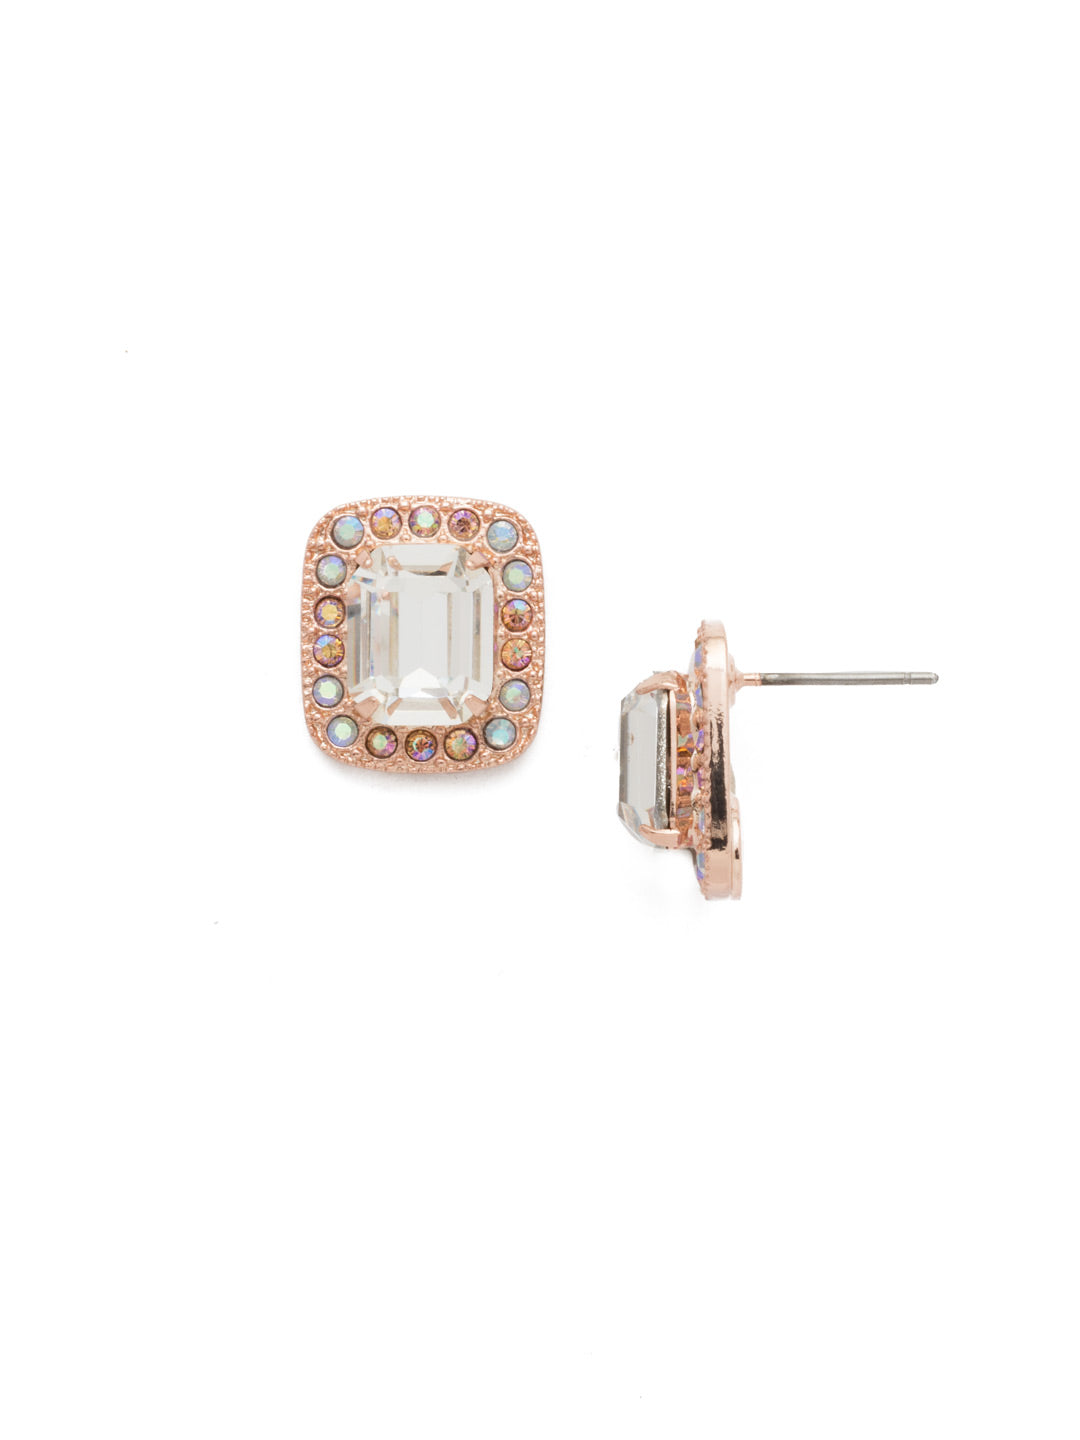 Lovely Luxury Stud Earrings - ECL10RGROG